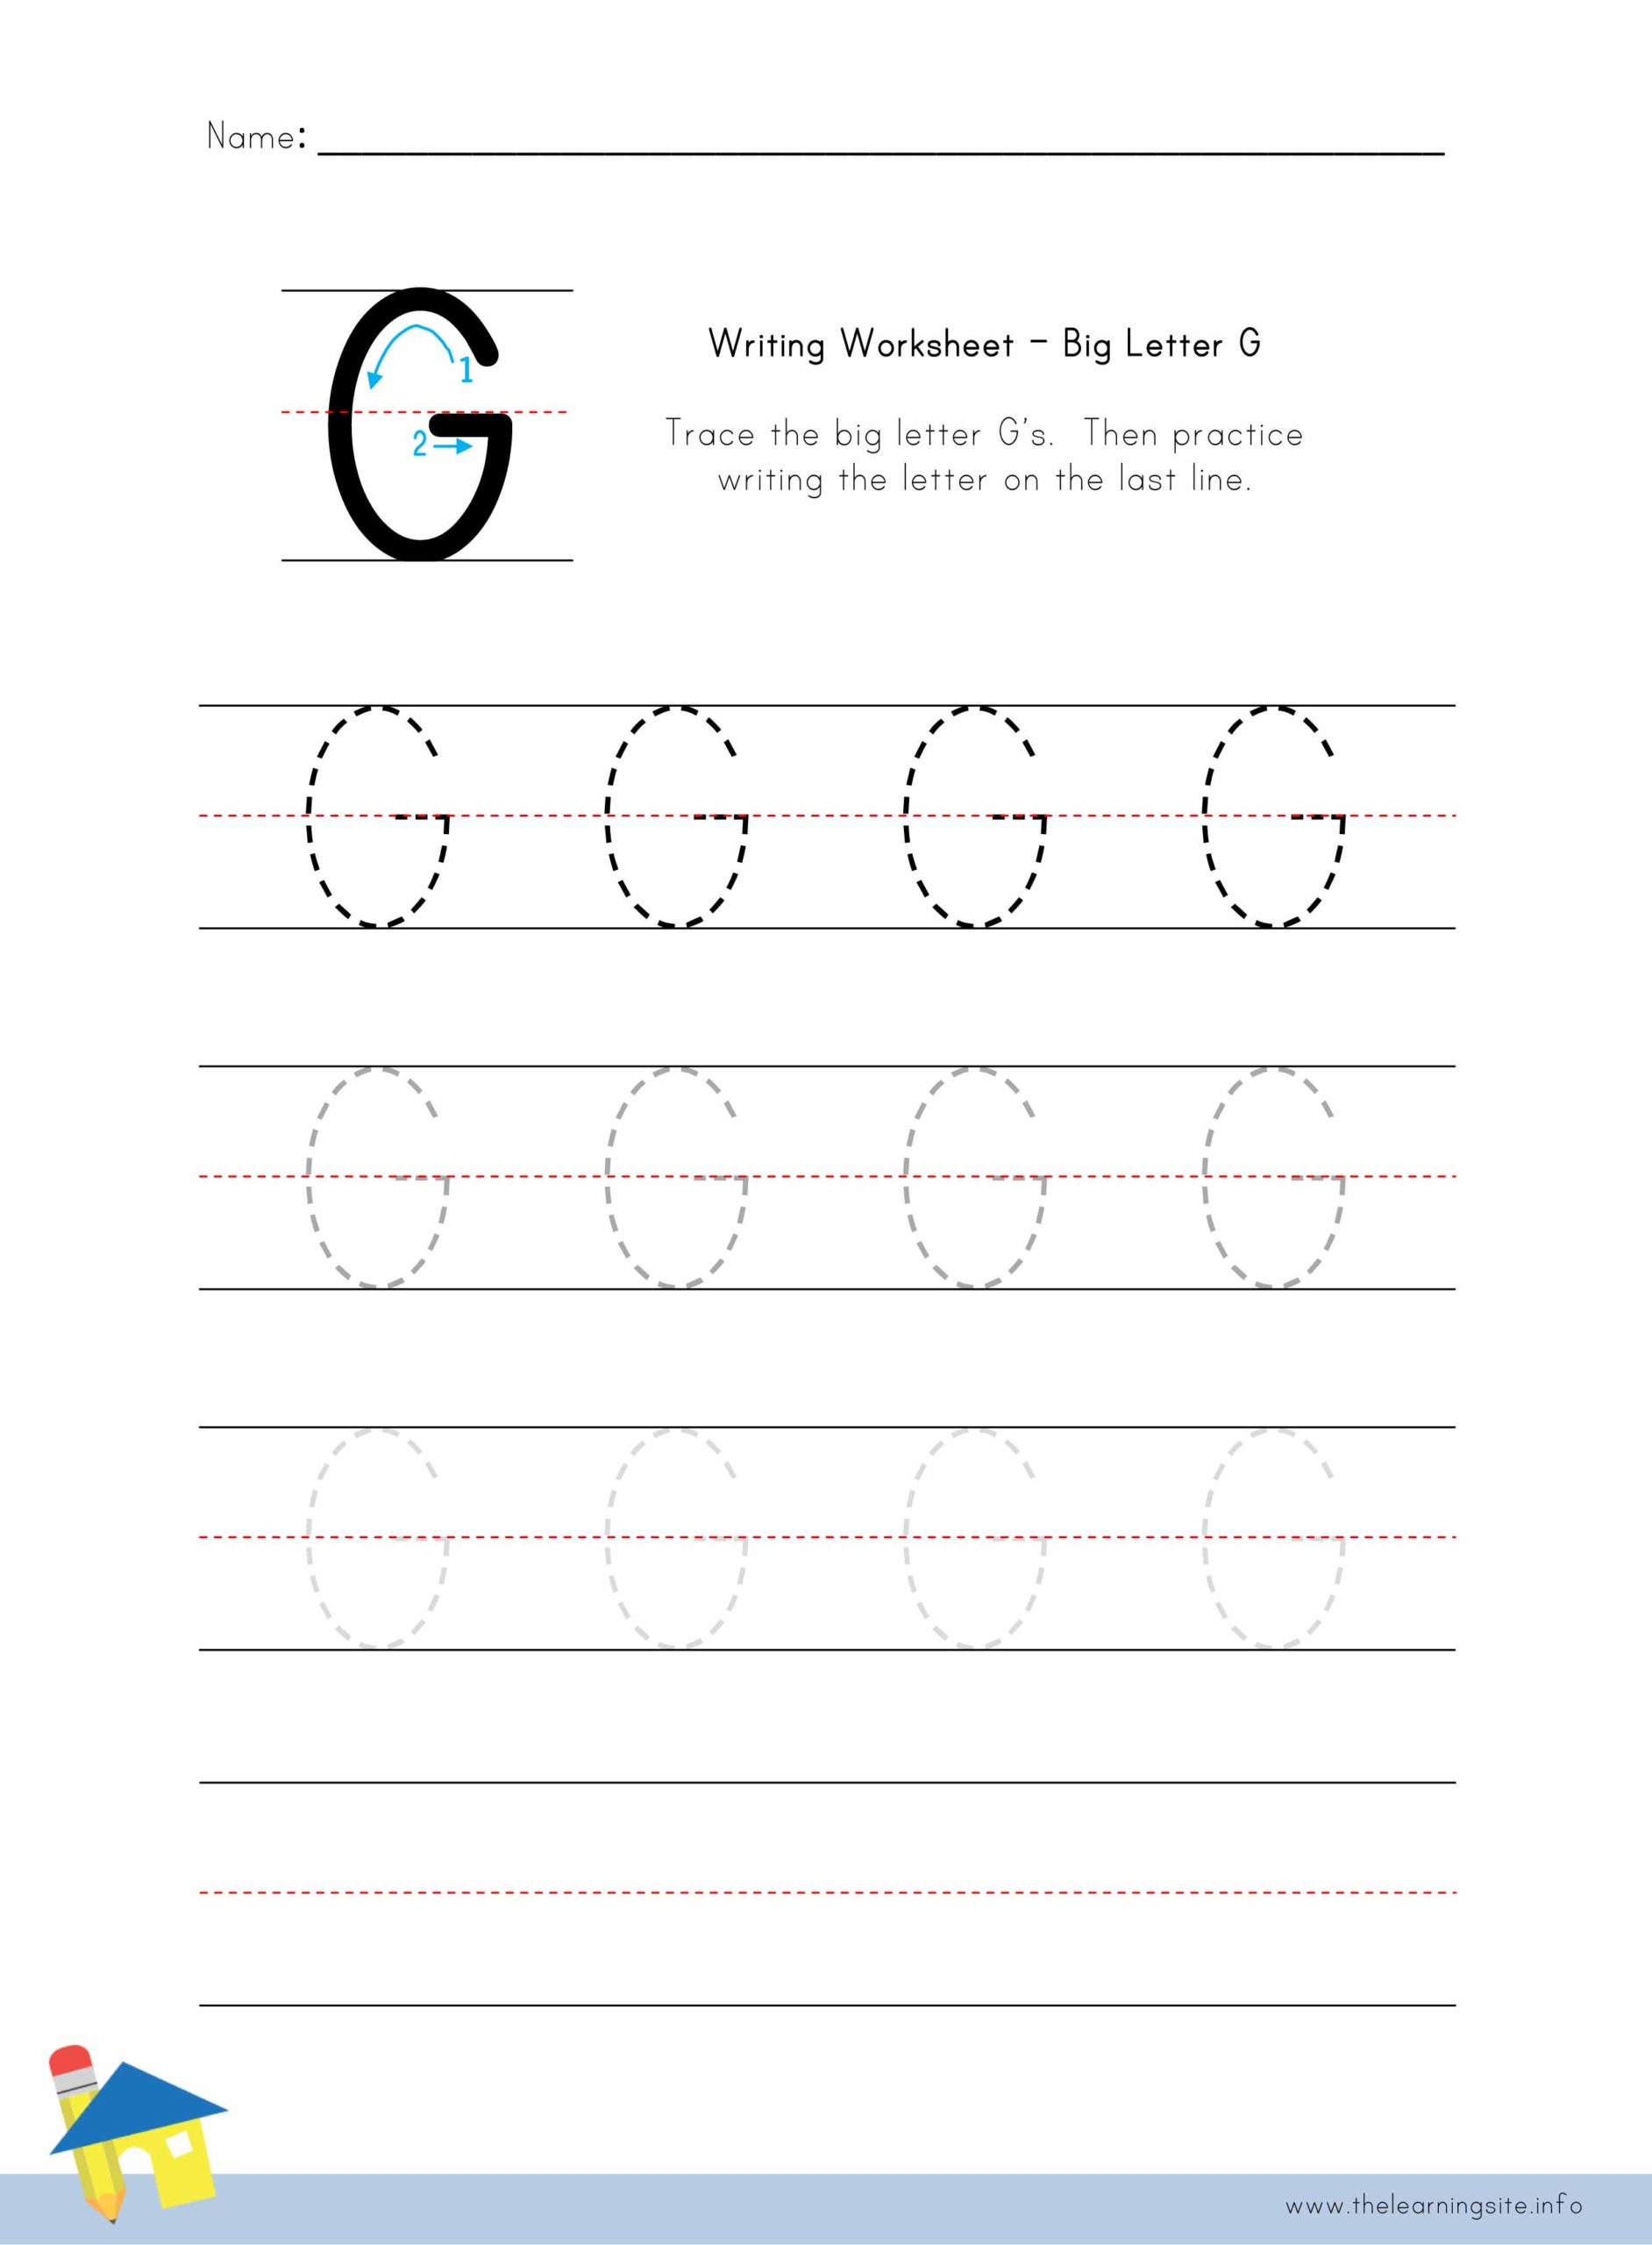 Big Letter G Writing Worksheet The Learning Site